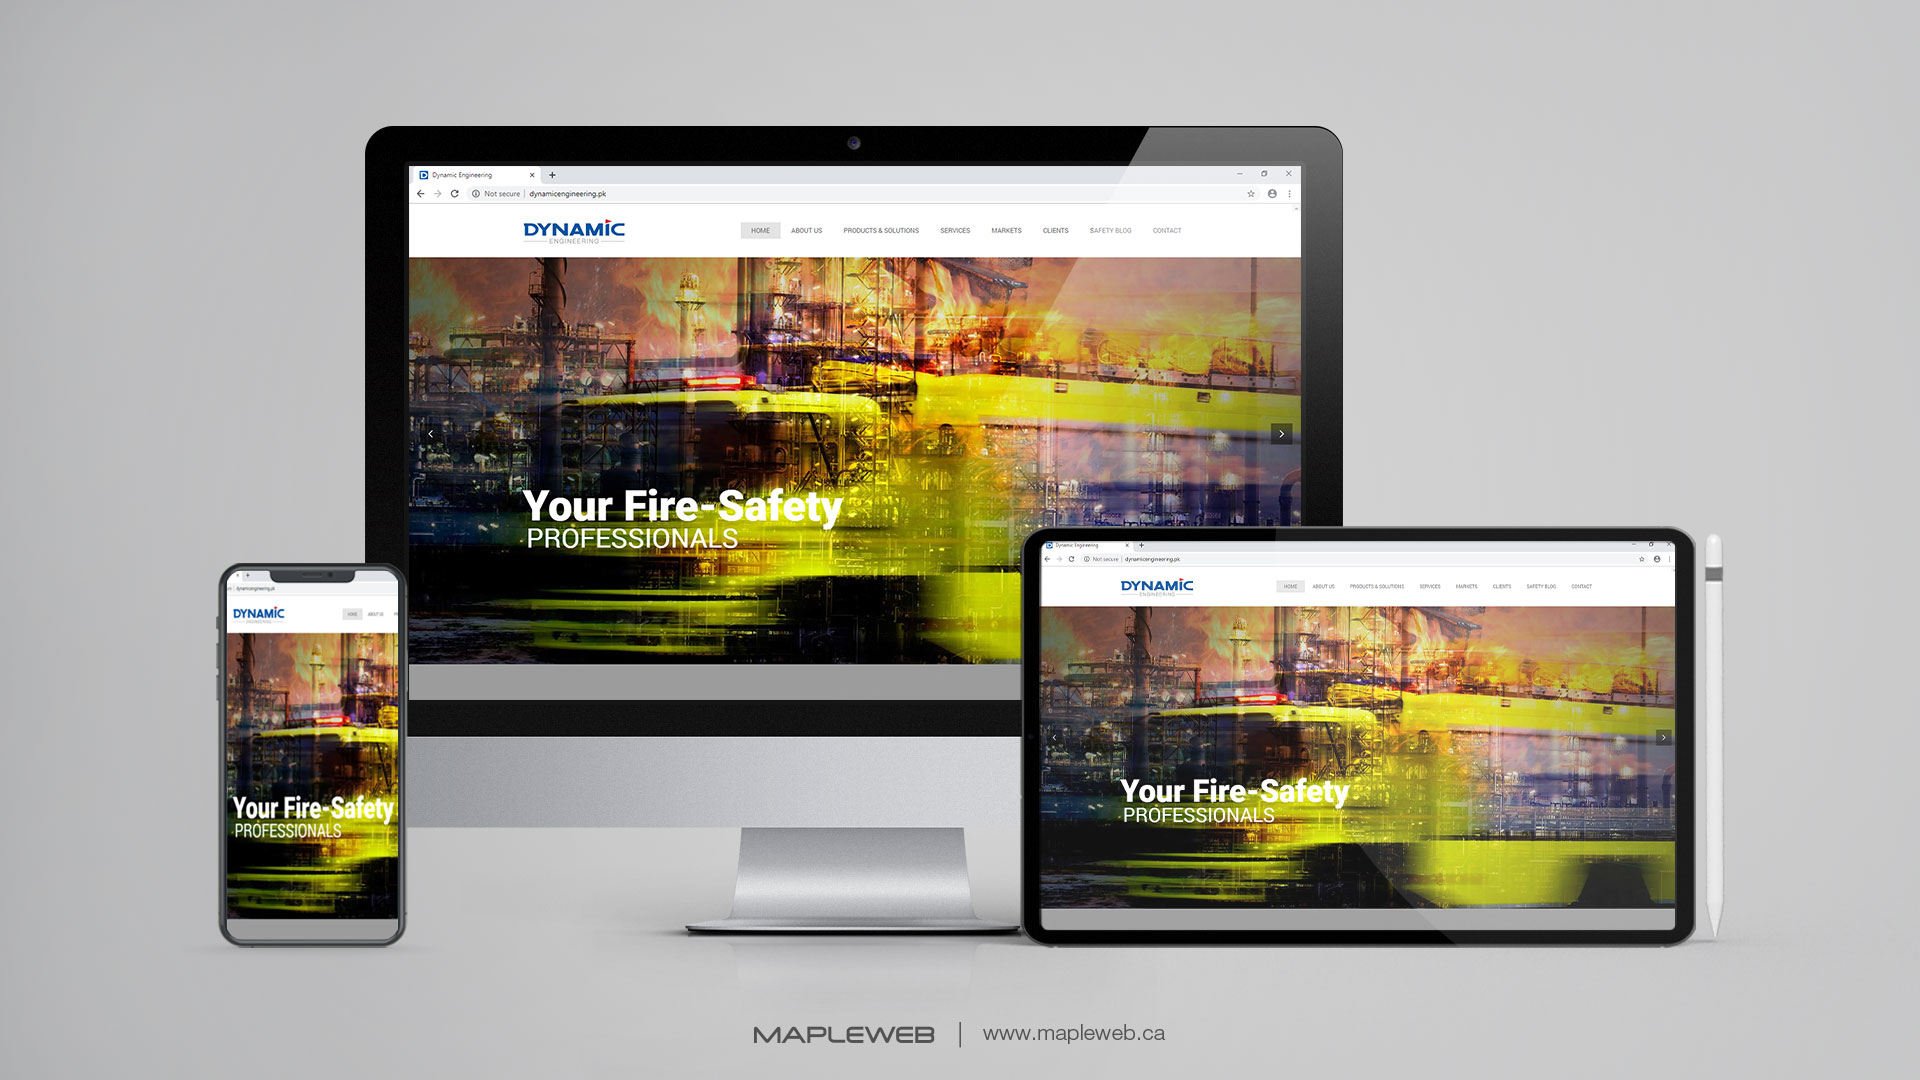 dynamic-Vancouver-web-design-Vancouver-web-development-by-mapleweb-canada-multiple-devices-display